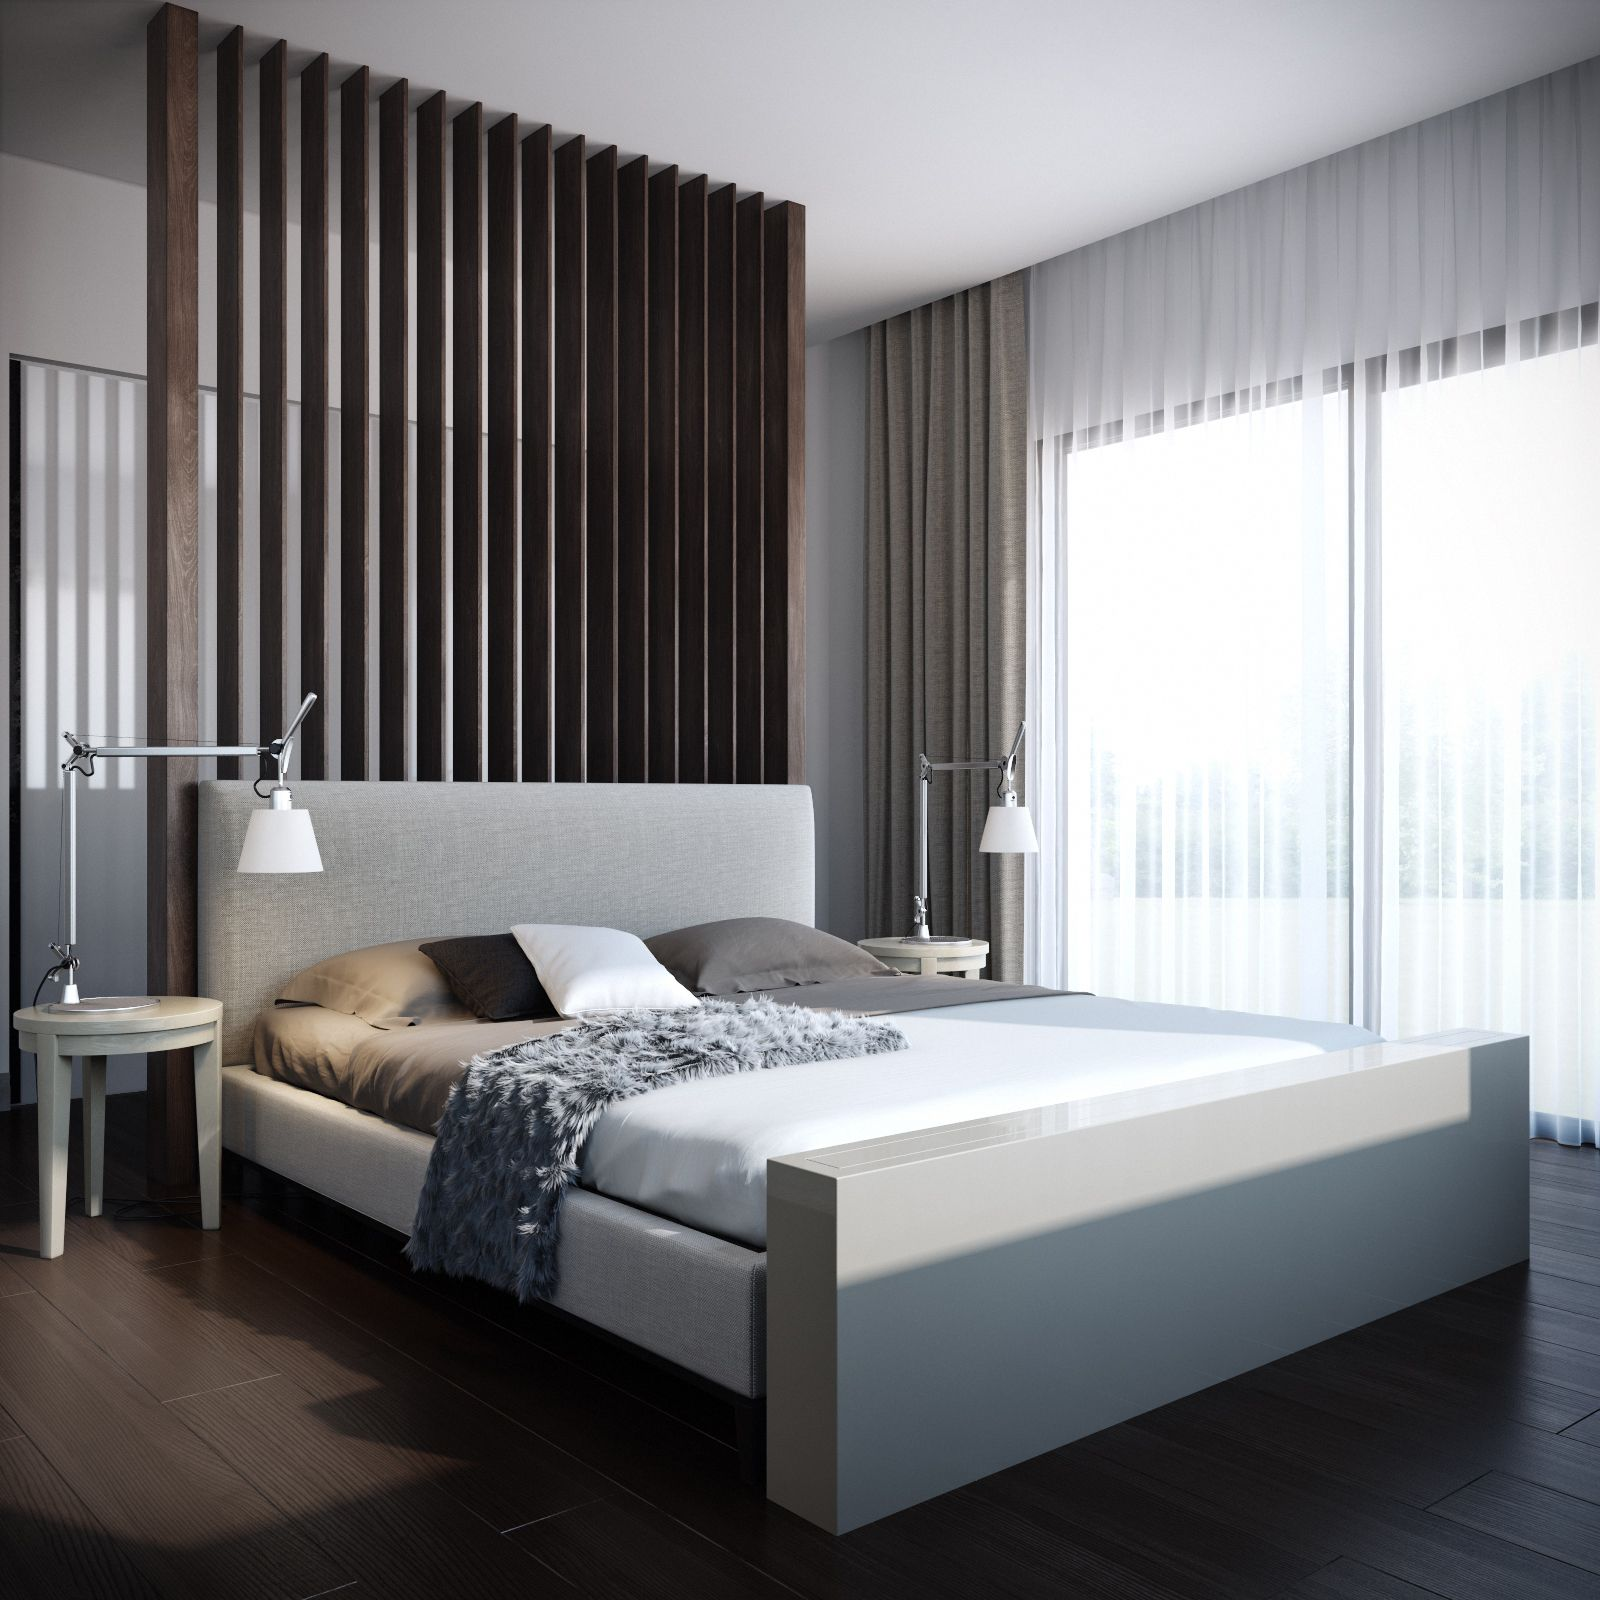 Simple house interior bedroom - New Zero Lot Bungalow For Sale At The Rise Selangor From Rm 1 575 000 Inthe Forbadroom Pinterest Bungalow Bed Wall And Bedrooms